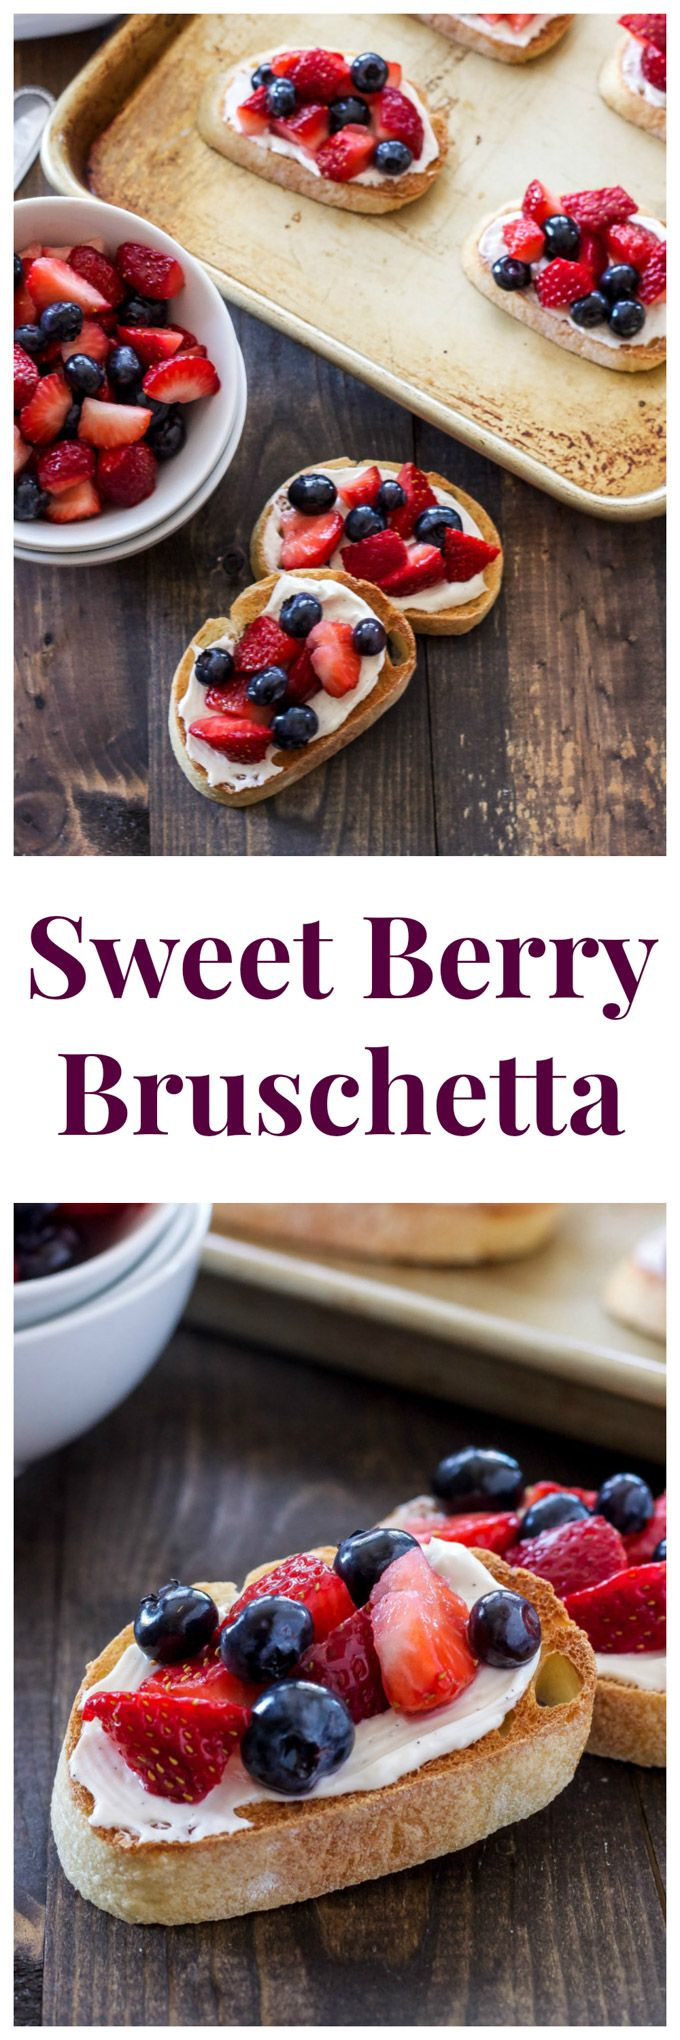 Sweet Berry Bruschetta | This sweet dessert bruschetta topped with berries is easy to make and perfect for spring! | @reciperunner